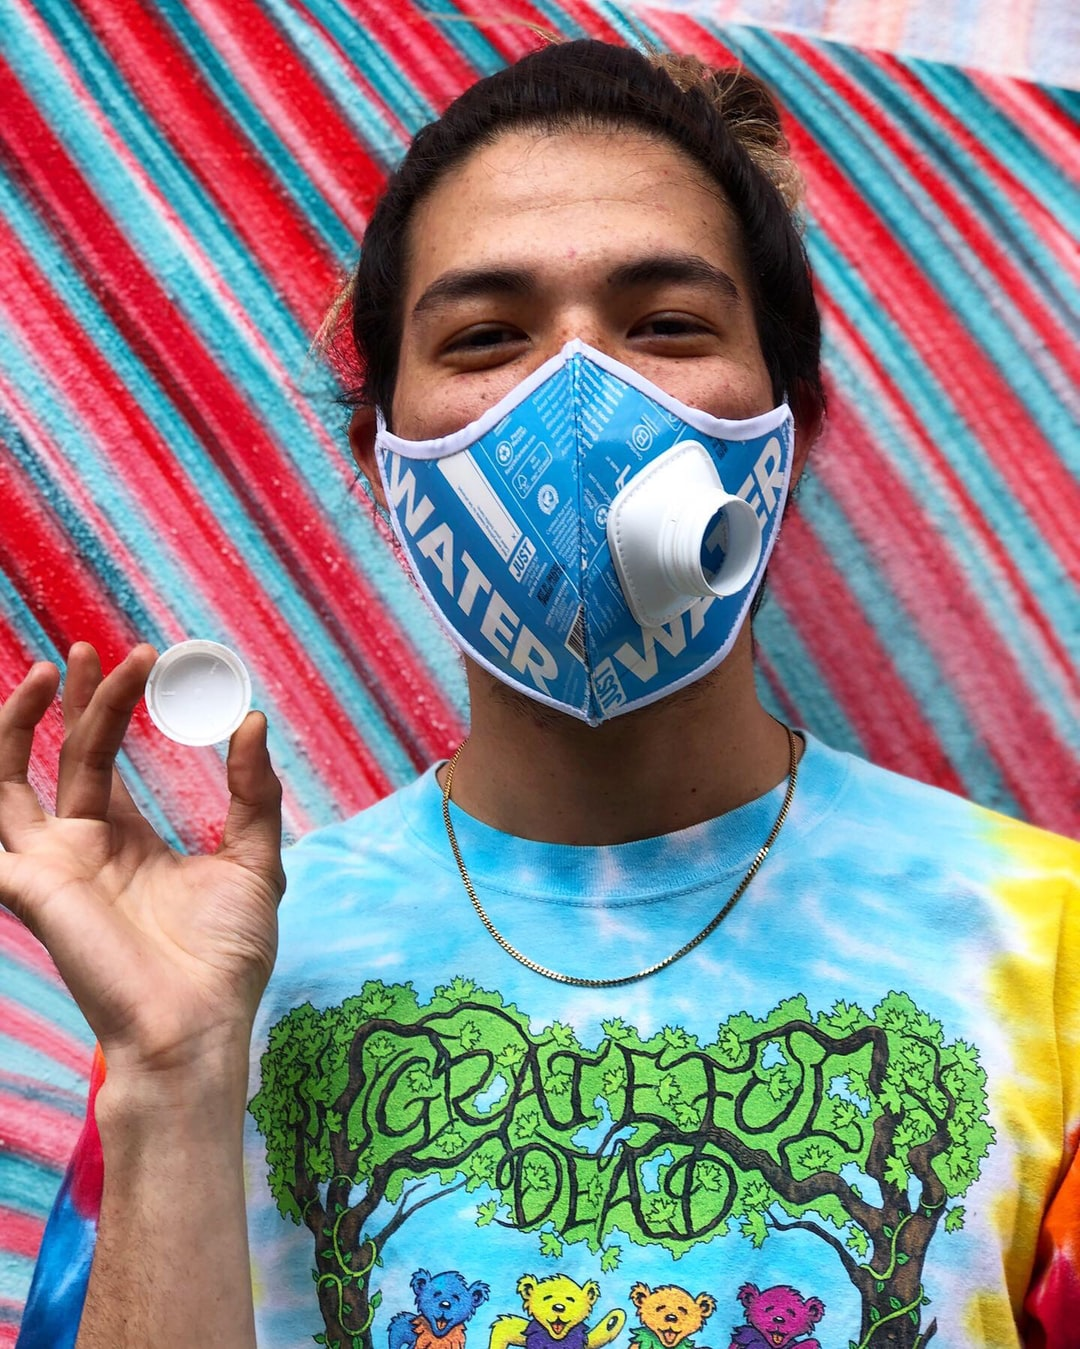 The World's First JUST WATER facemask. Handmade from 2 water bottles!